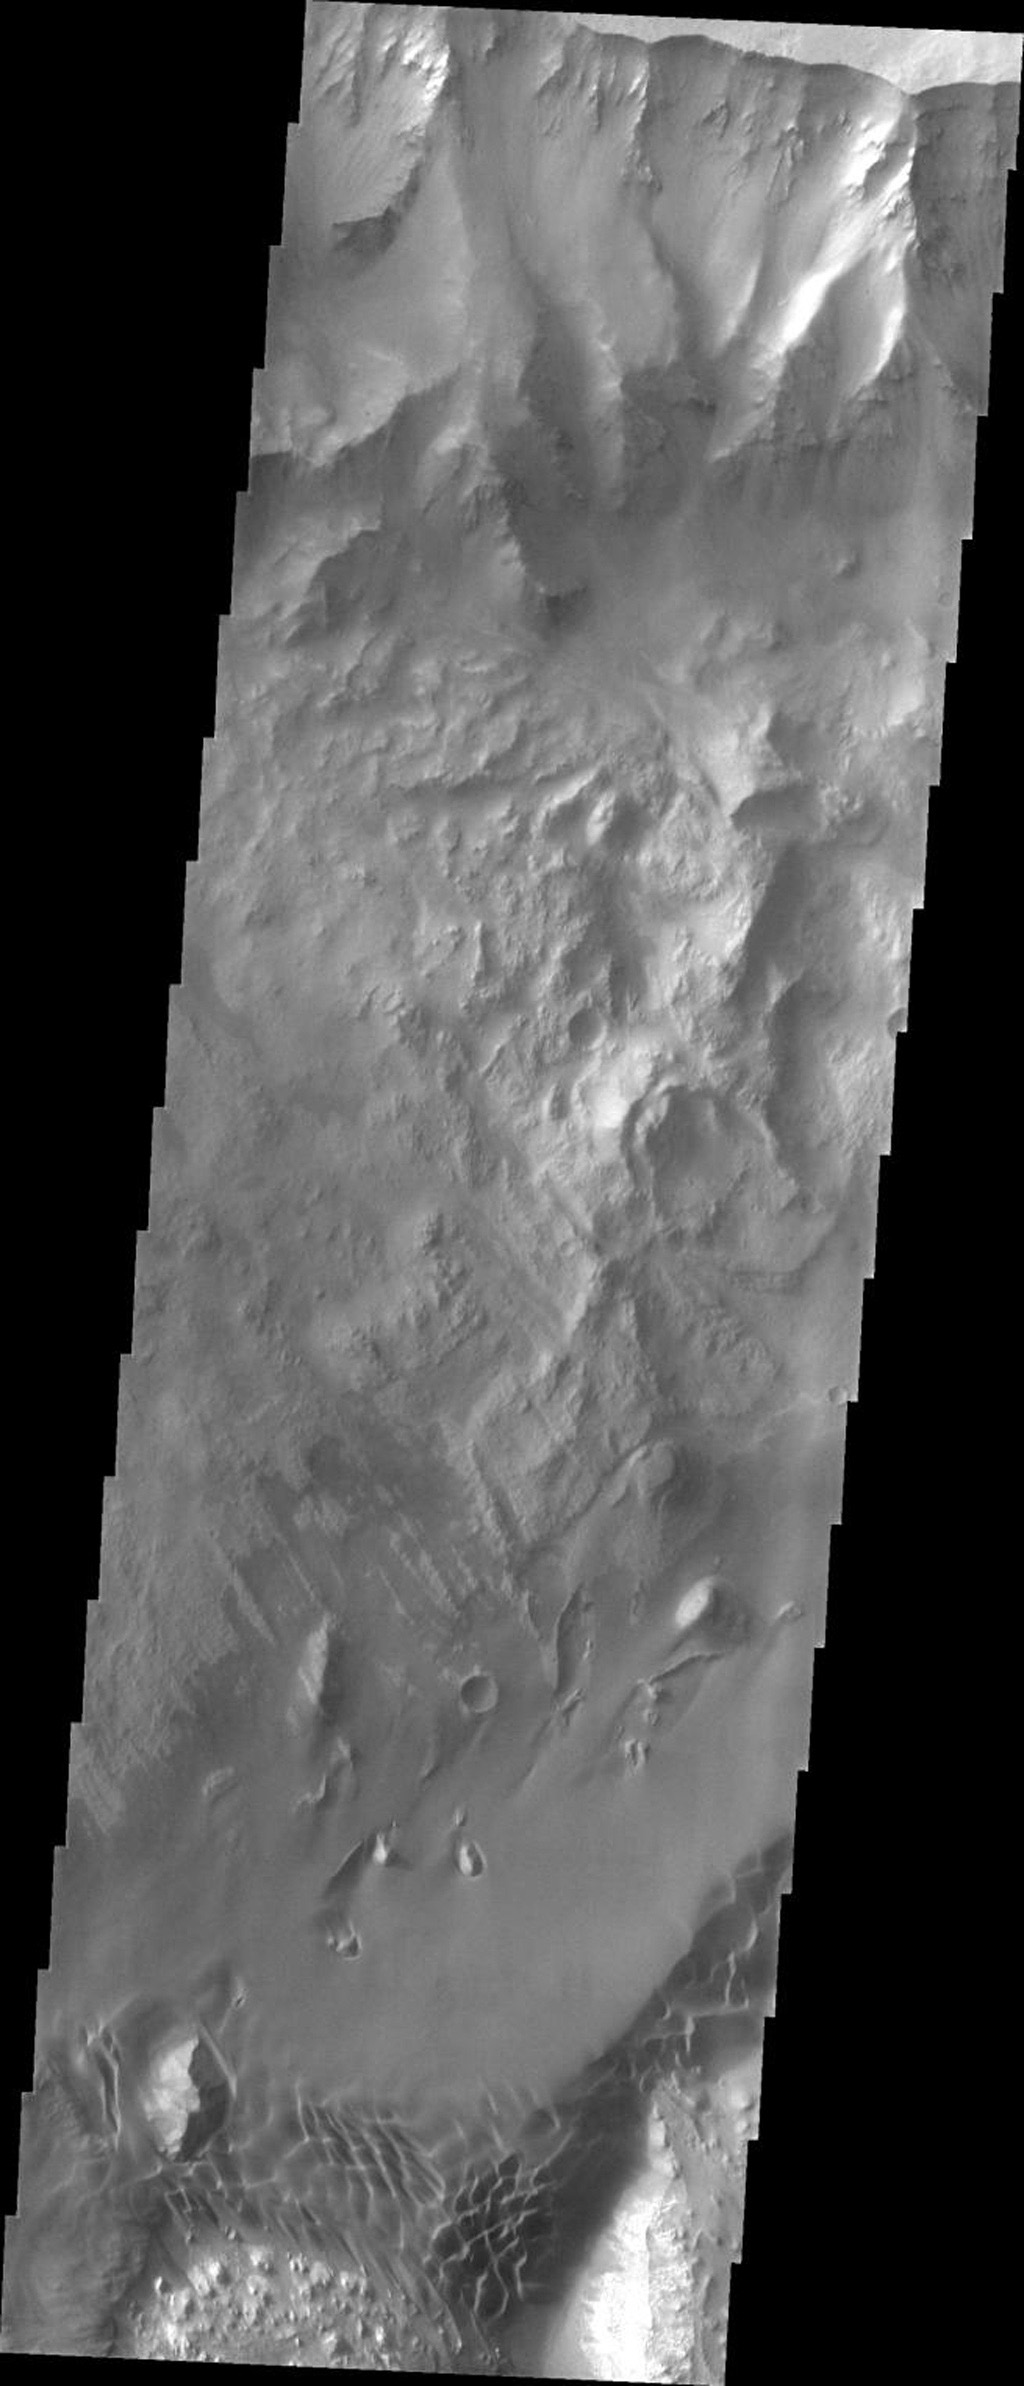 This image from NASA's Mars Odyssey spacecraft is of a sand sheet on Mars in the Ganges Chasma portion of Valles Marineris. Sand seas on Earth are often called ergs, an Arabic name for dune field. In this image, dunes are coalescing into a sand sheet.